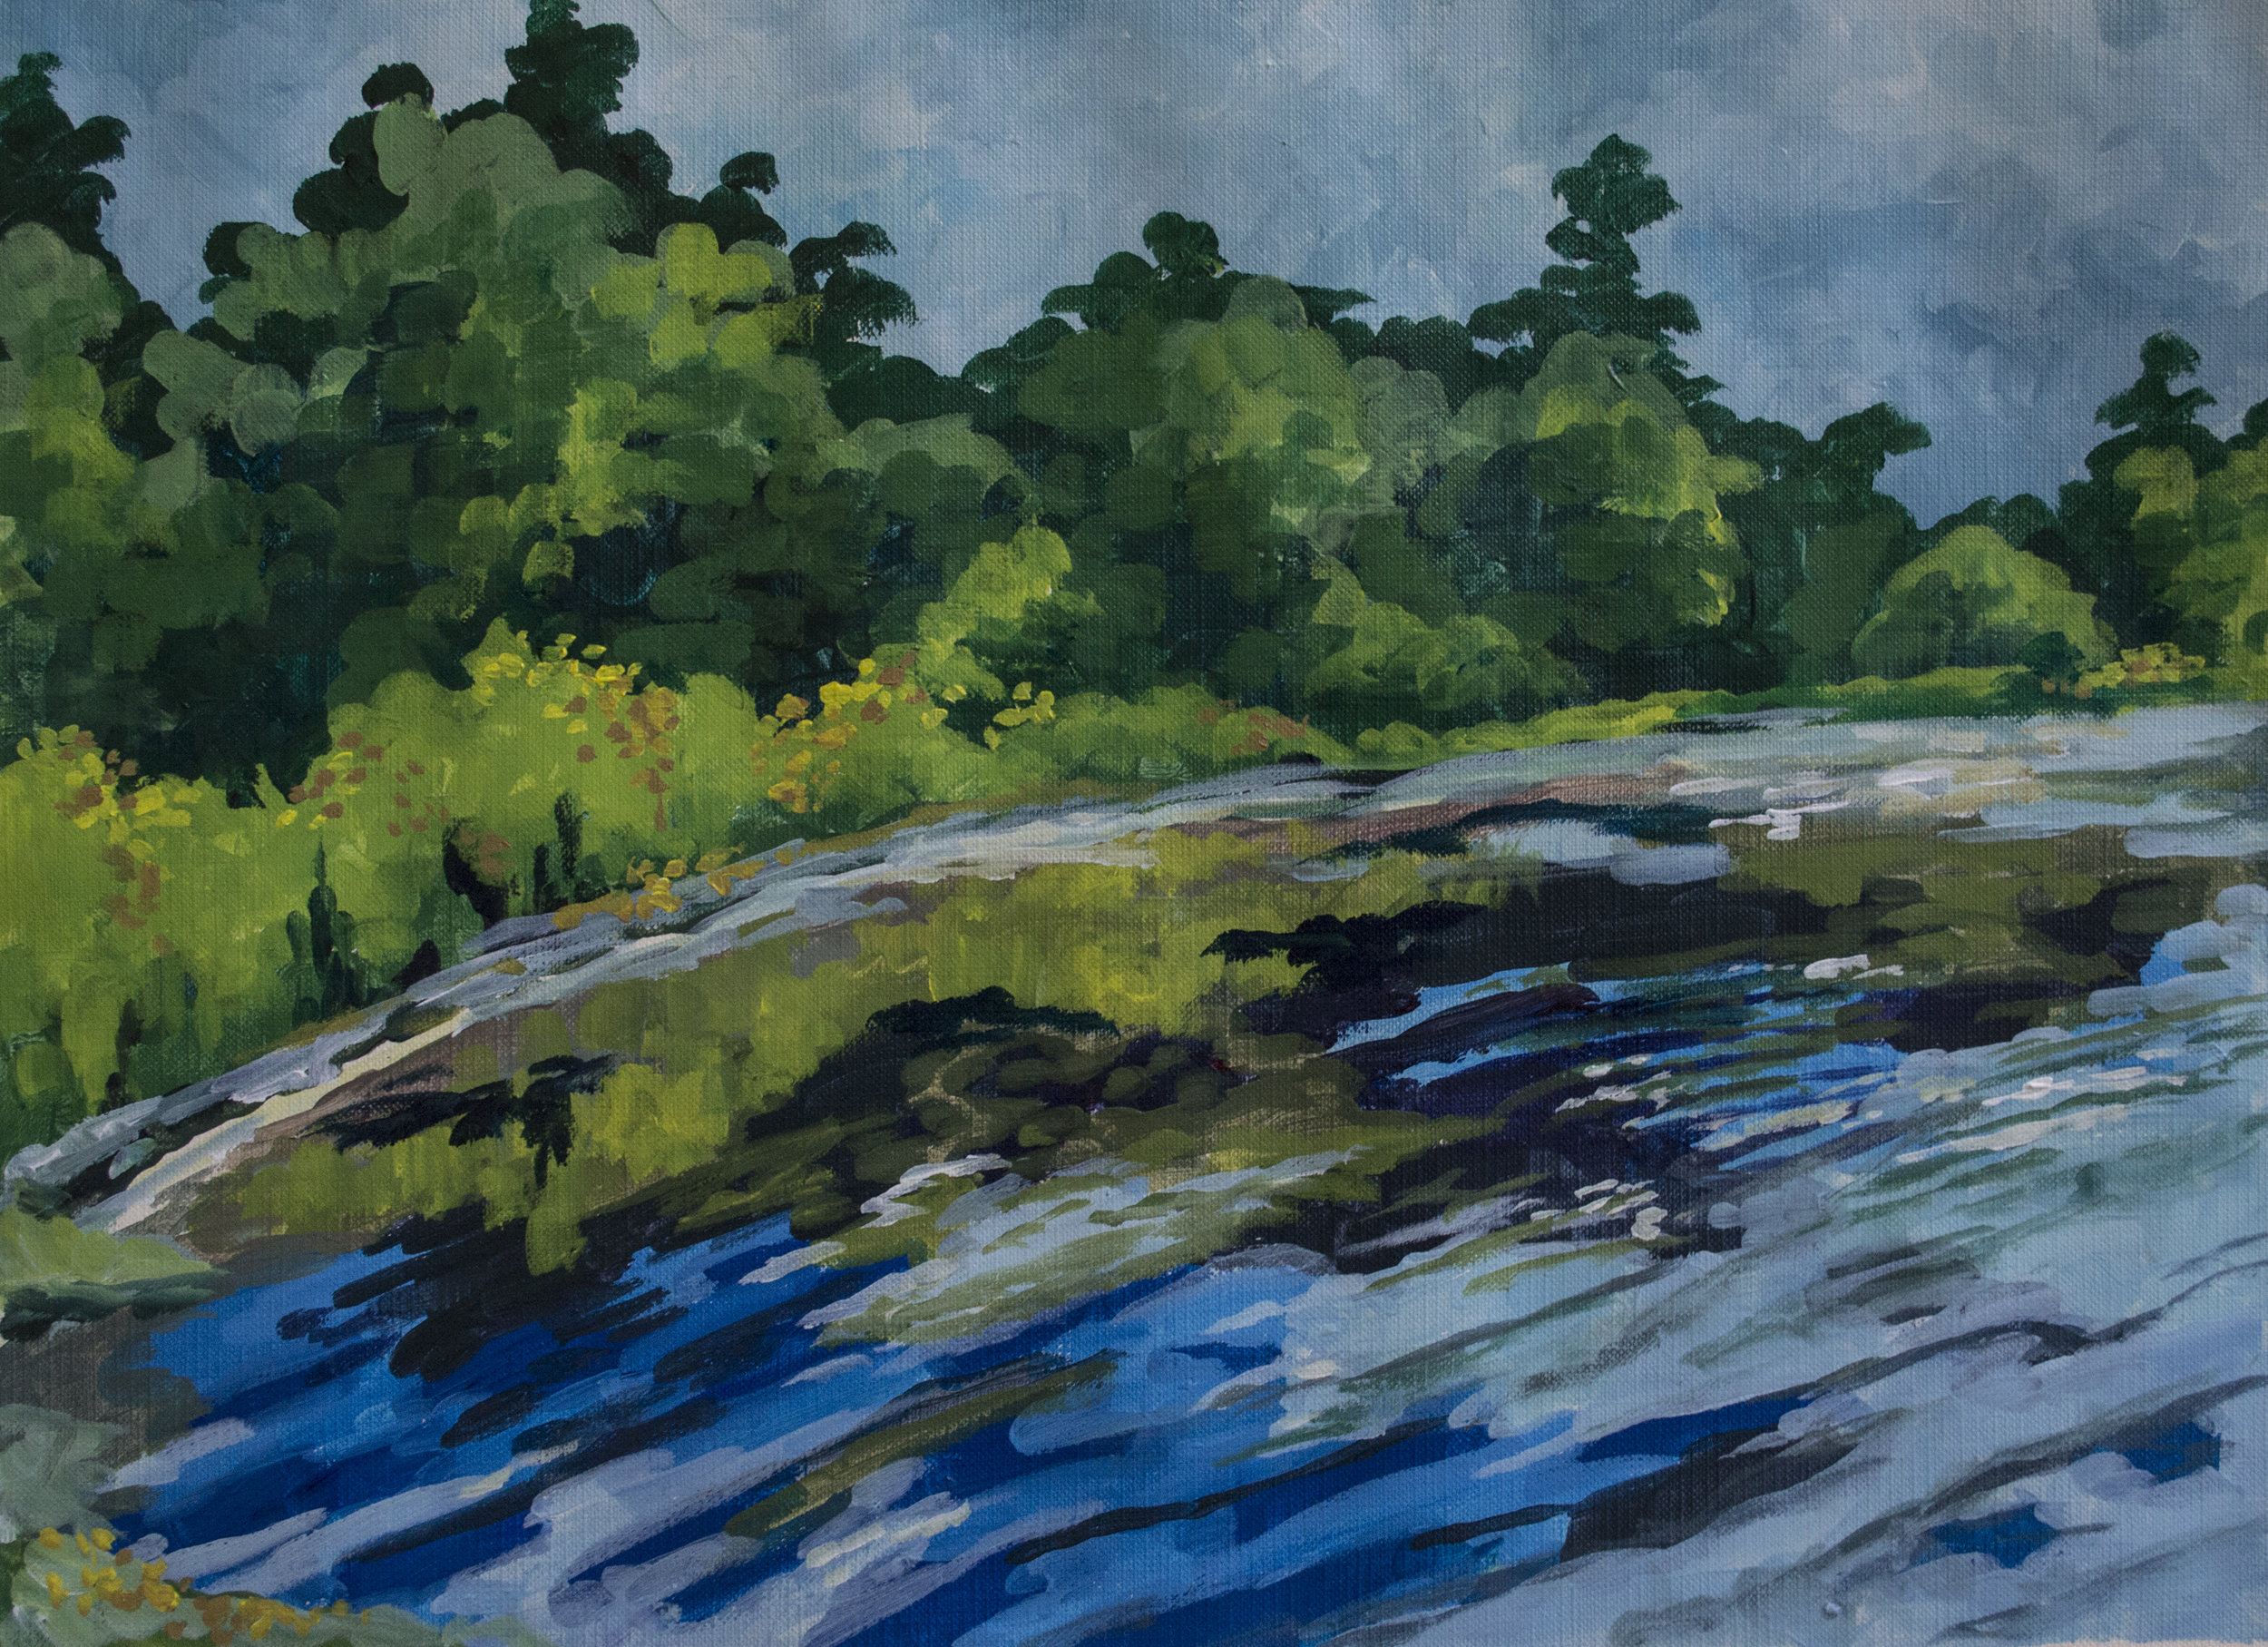 Ashuelot Cove   2018  15 in x 11 in  Acrylic on Paper